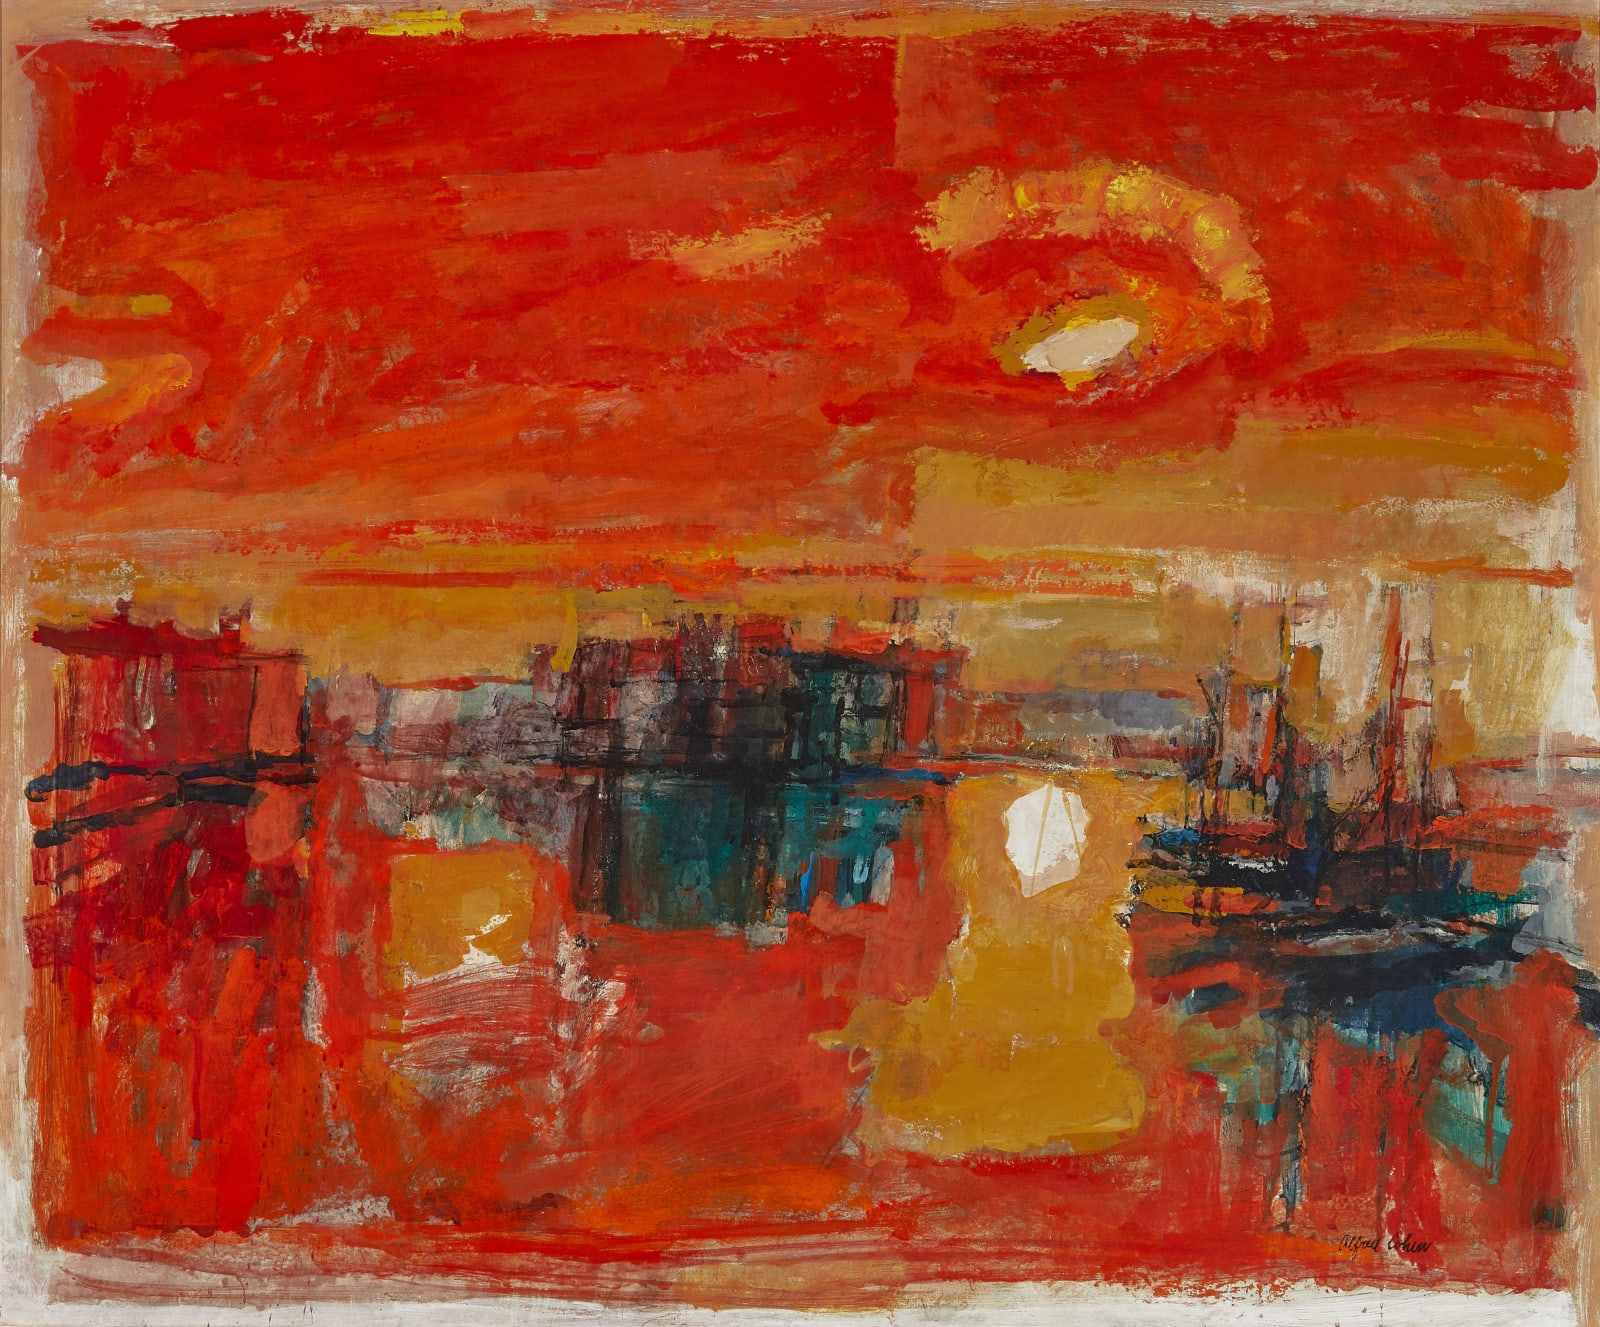 Alfred Cohen (1920-2001) Harbour Approach 1963 Oil on board 76.2 x 91.4 cm Alfred Cohen Art Foundation © Estate of Alfred Cohen 2020